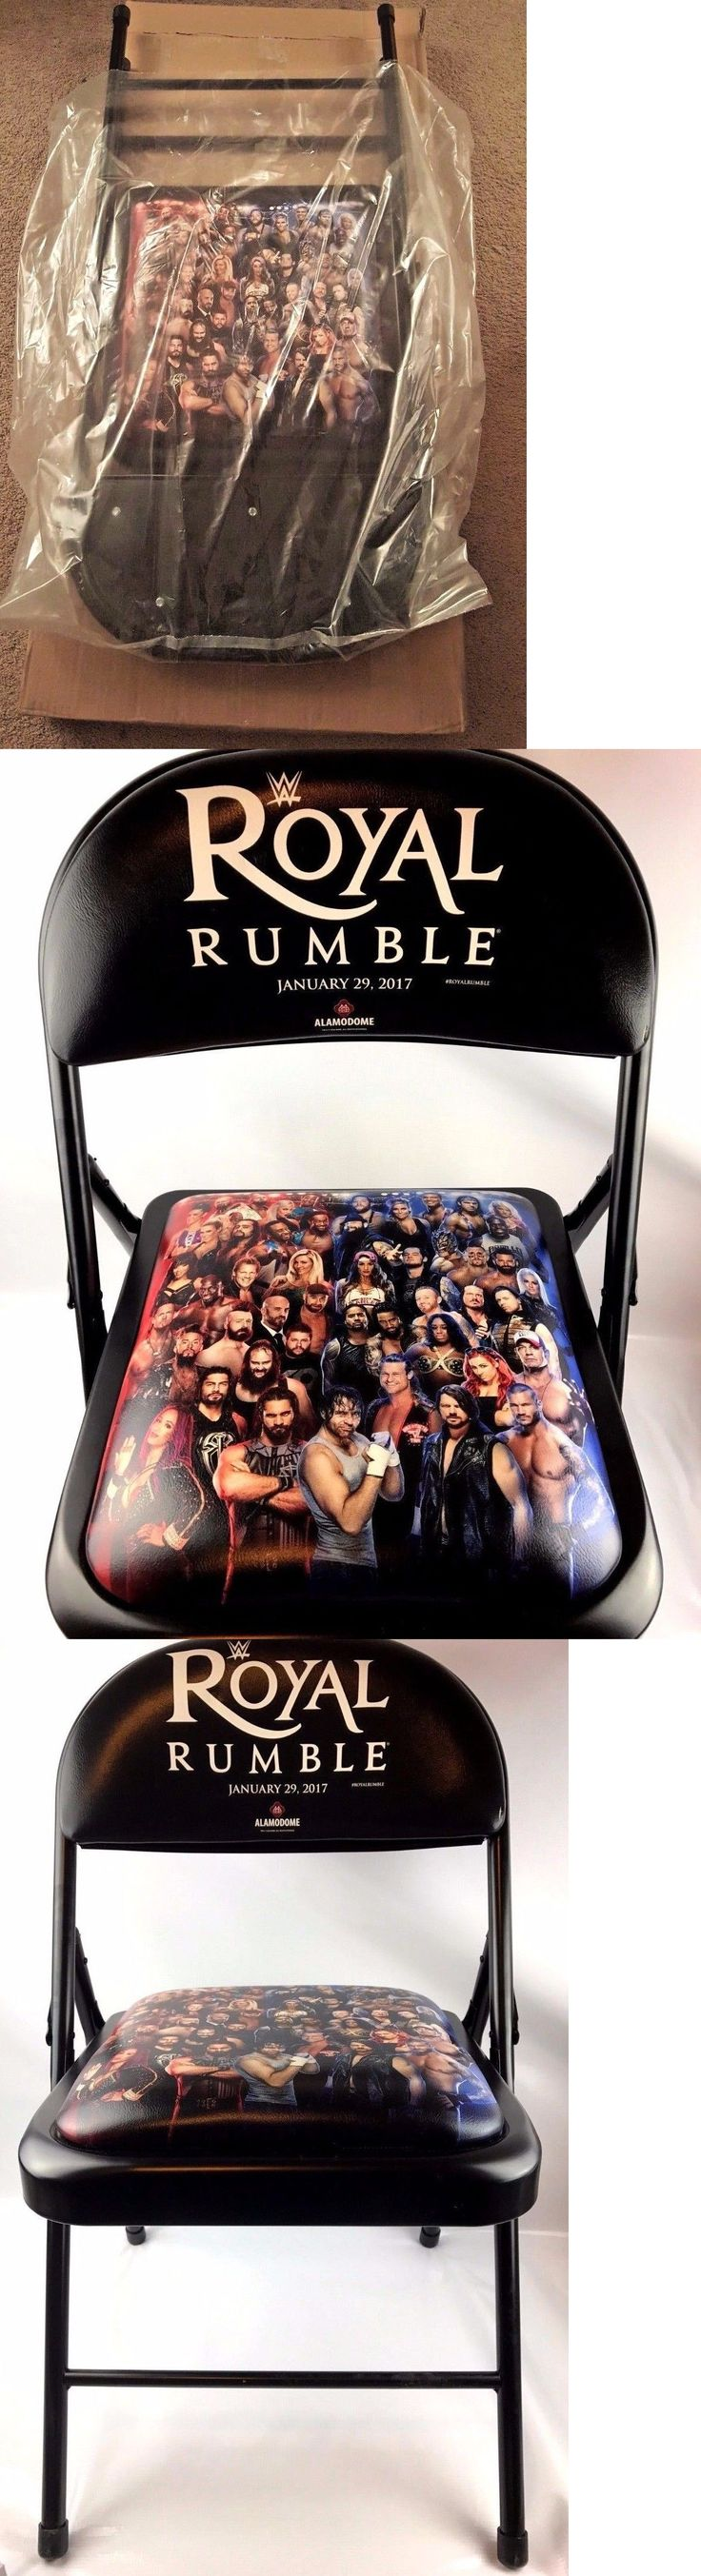 Wrestling 2902: Wwe Royal Rumble 2017 Ppv Ringside Commemorative Chair New Original Box -> BUY IT NOW ONLY: $149.99 on eBay!